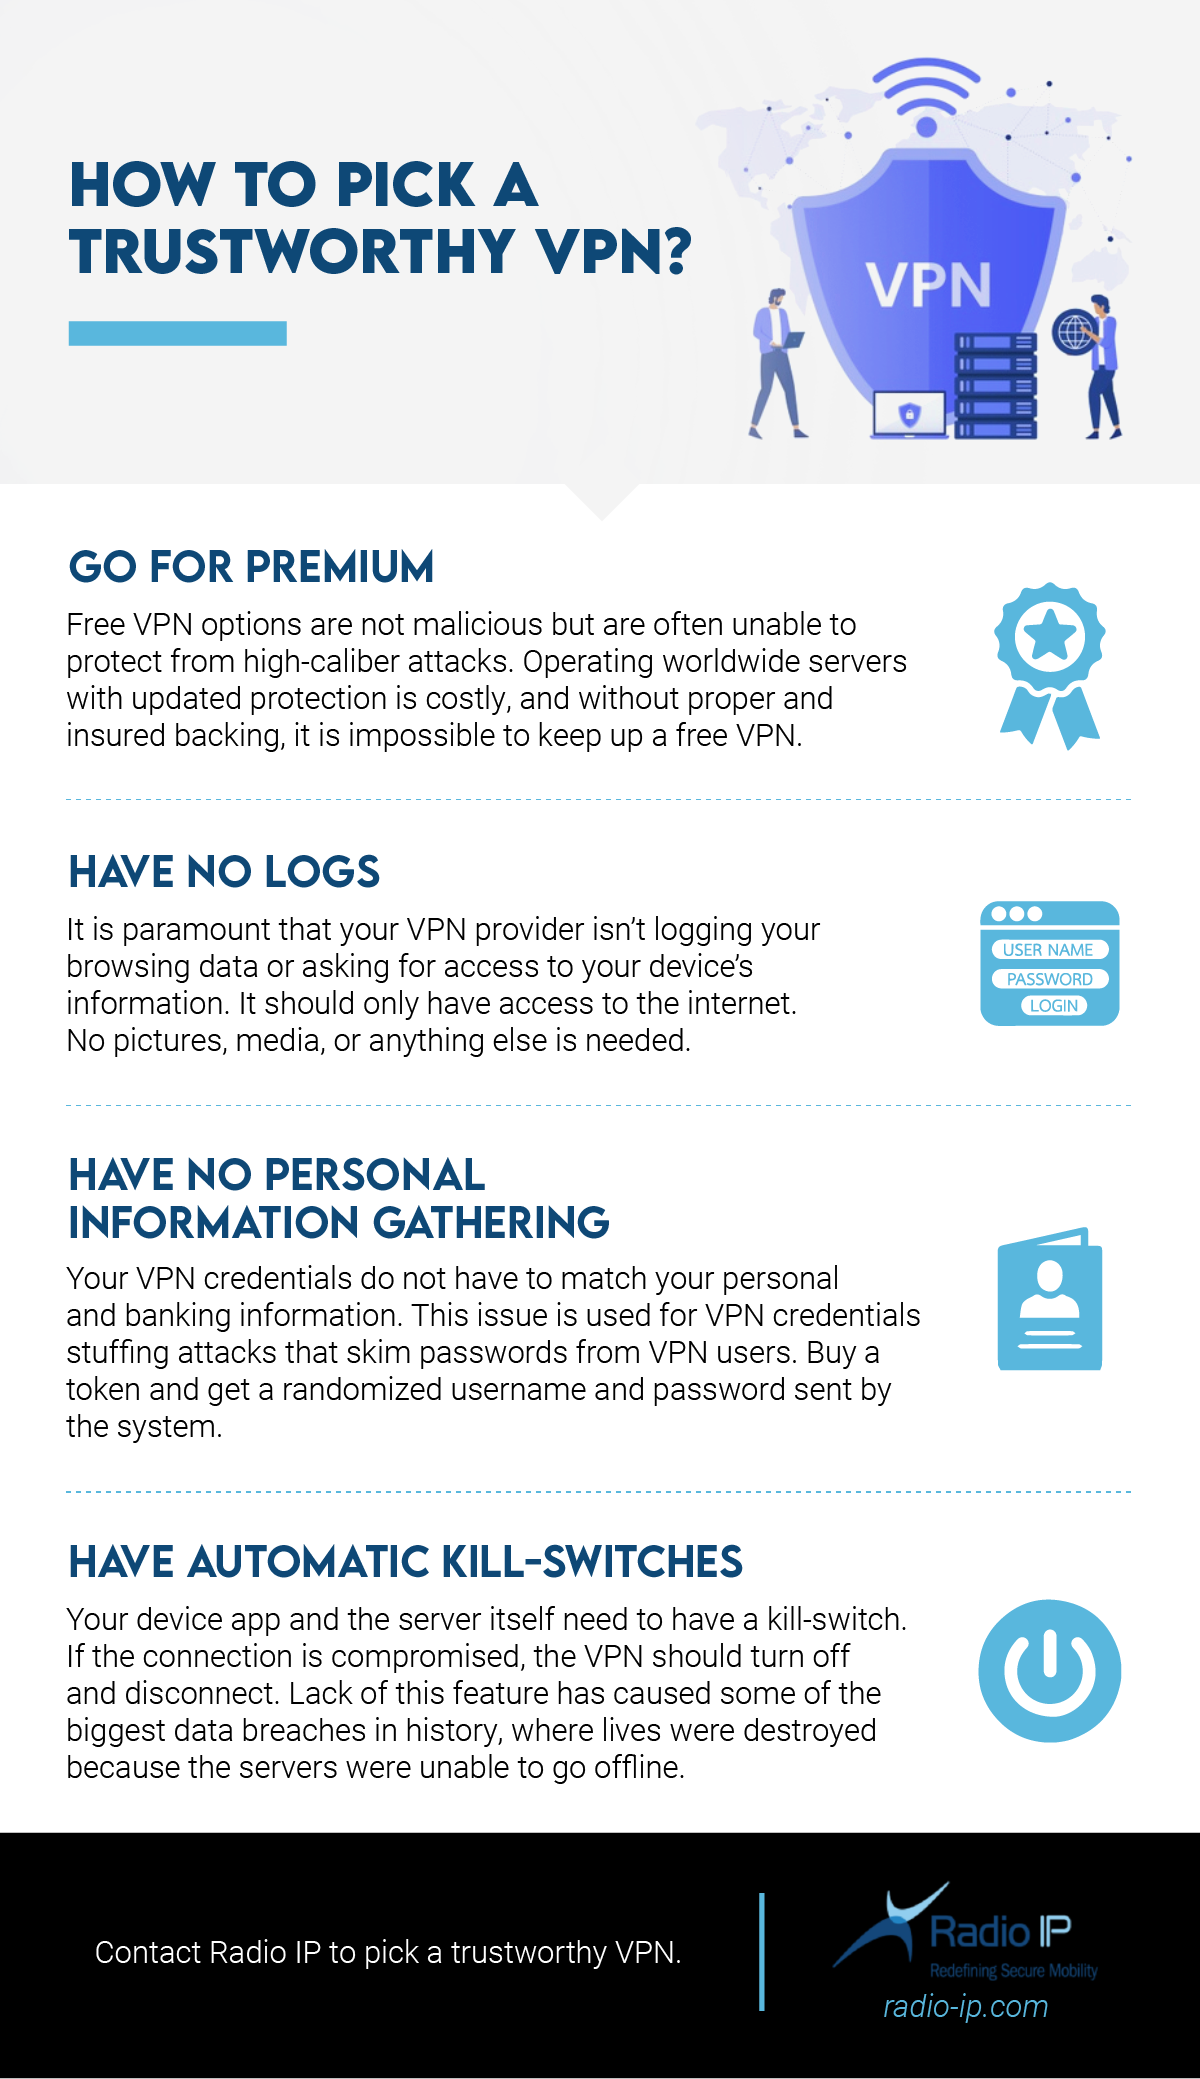 How To Pick A Trustworthy VPN